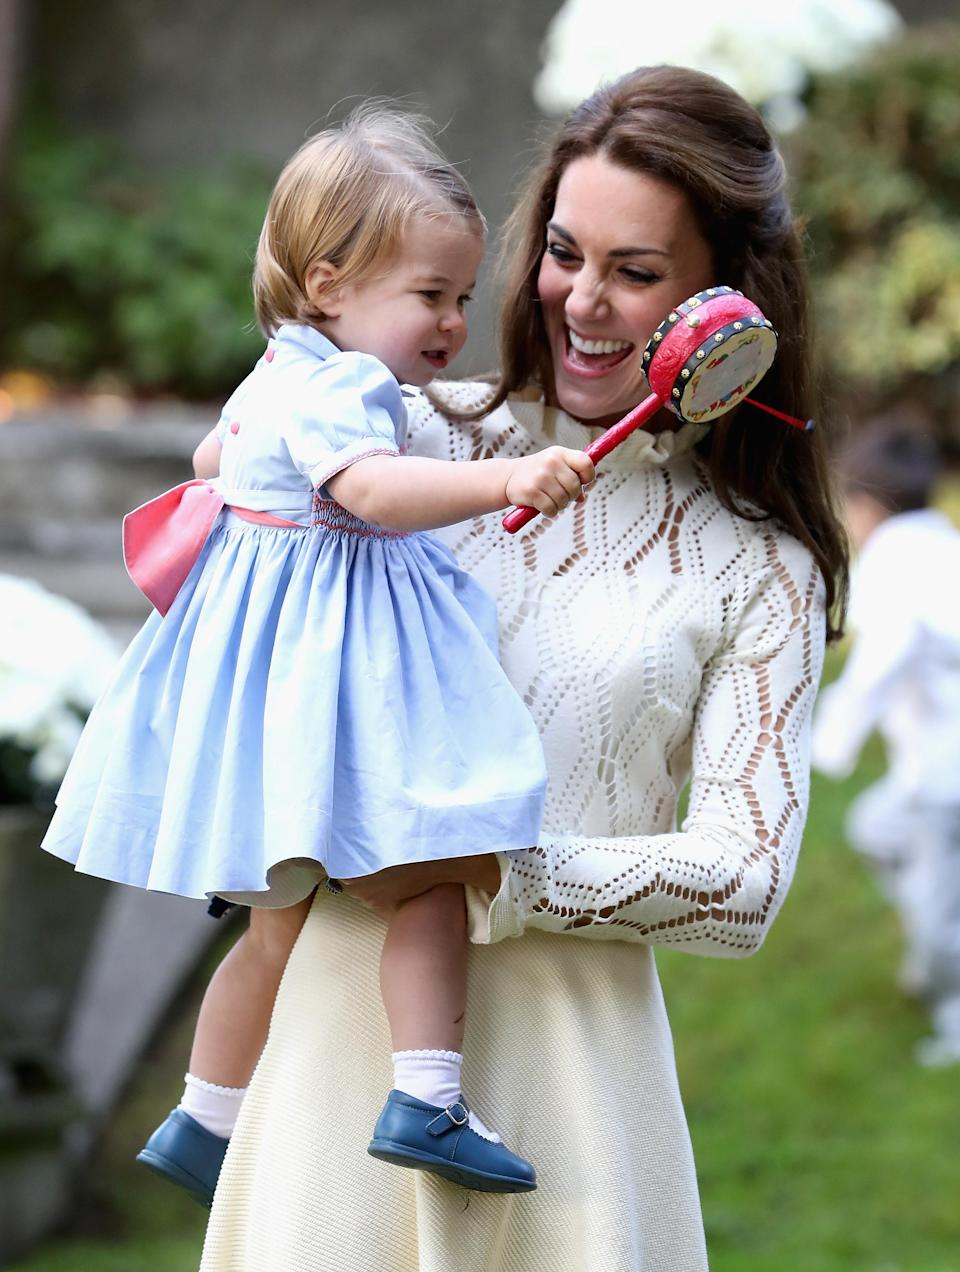 <p>The Duchess and little Charlotte looked adorable enjoying some light-hearted fun at a children's party.</p>